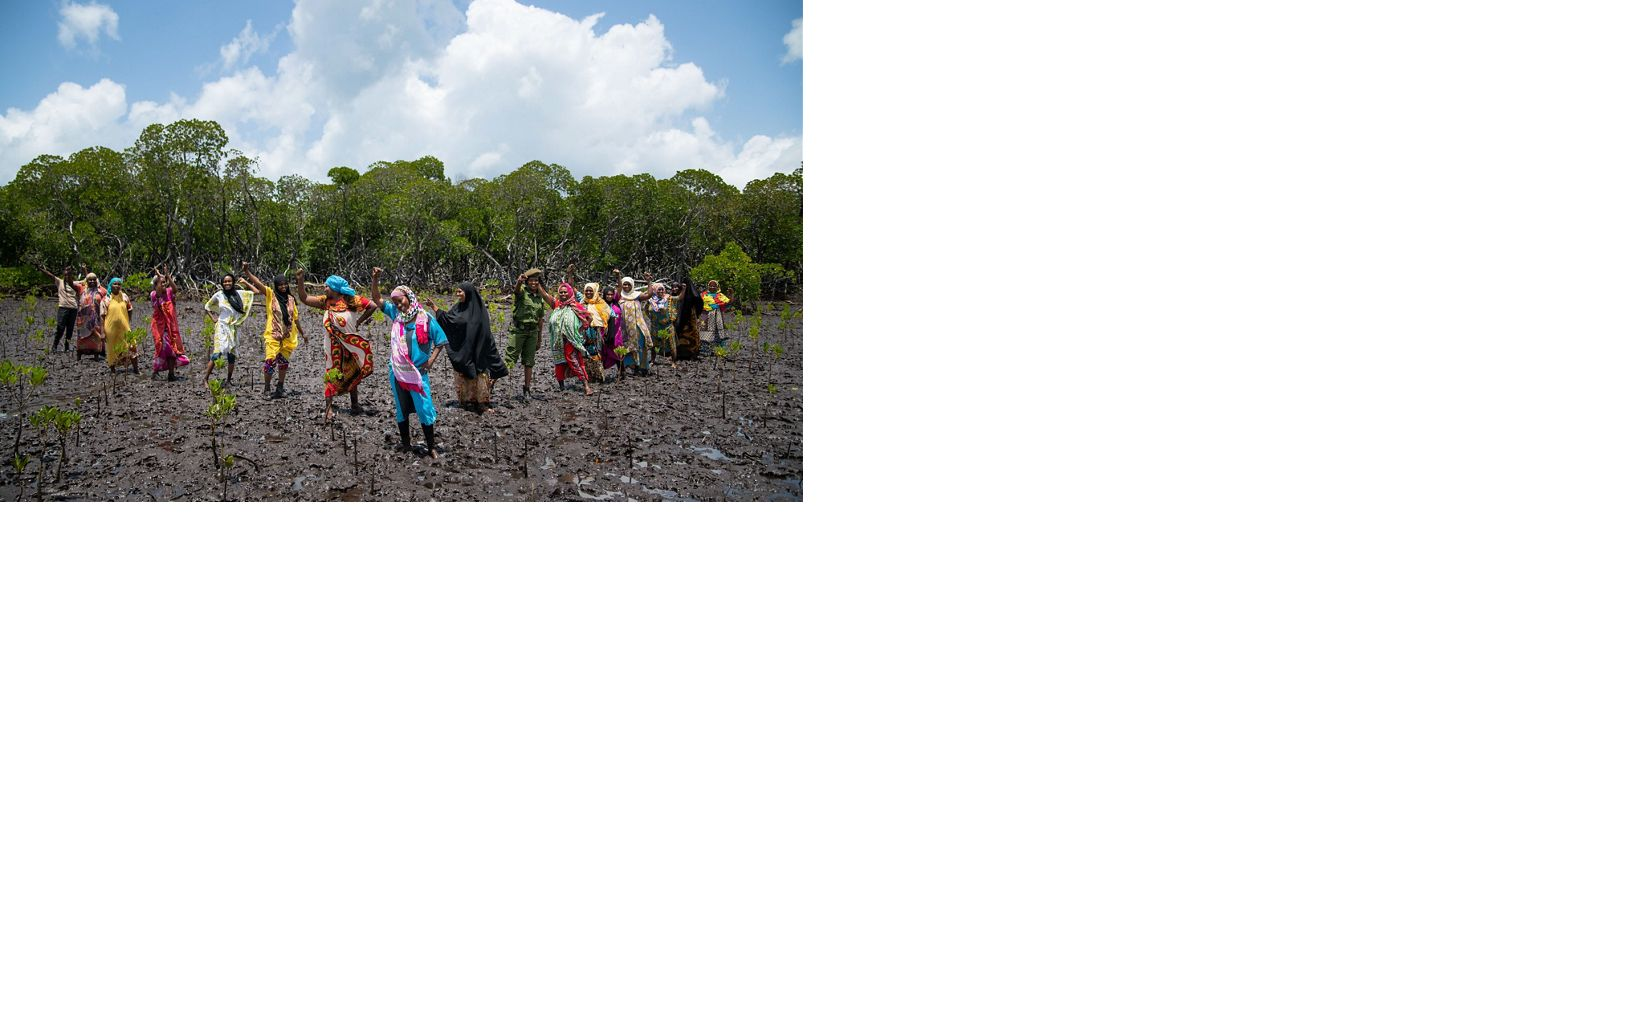 Zulfar Hassan (center, in blue), chairlady of the Mtangawanda Women's Association, and a group of women plant mangroves in a TNC-led mangrove restoration project.